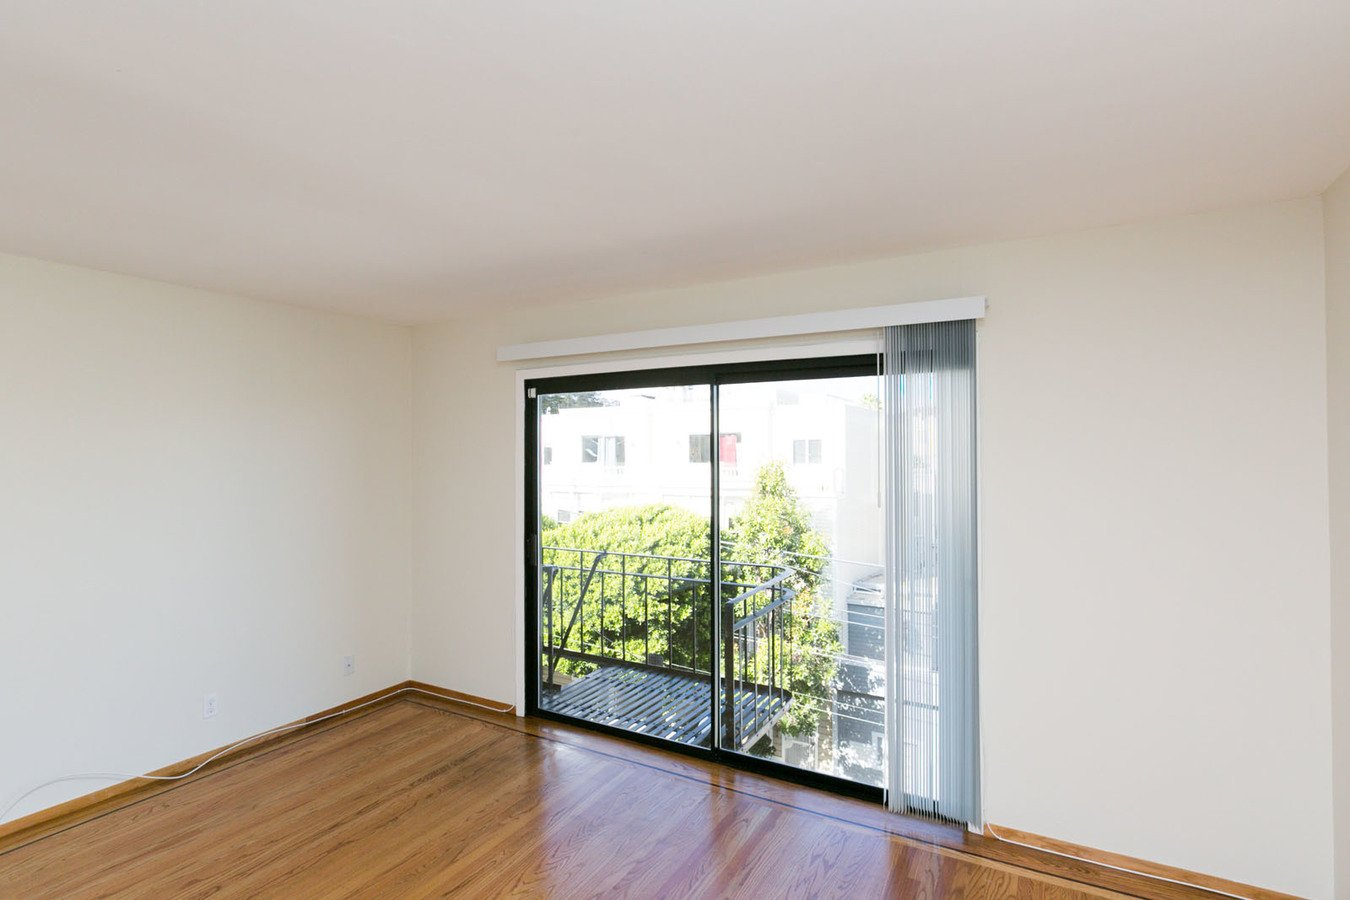 2 Bedrooms 1 Bathroom Apartment for rent at 3875 18th Street Apartments in San Francisco, CA